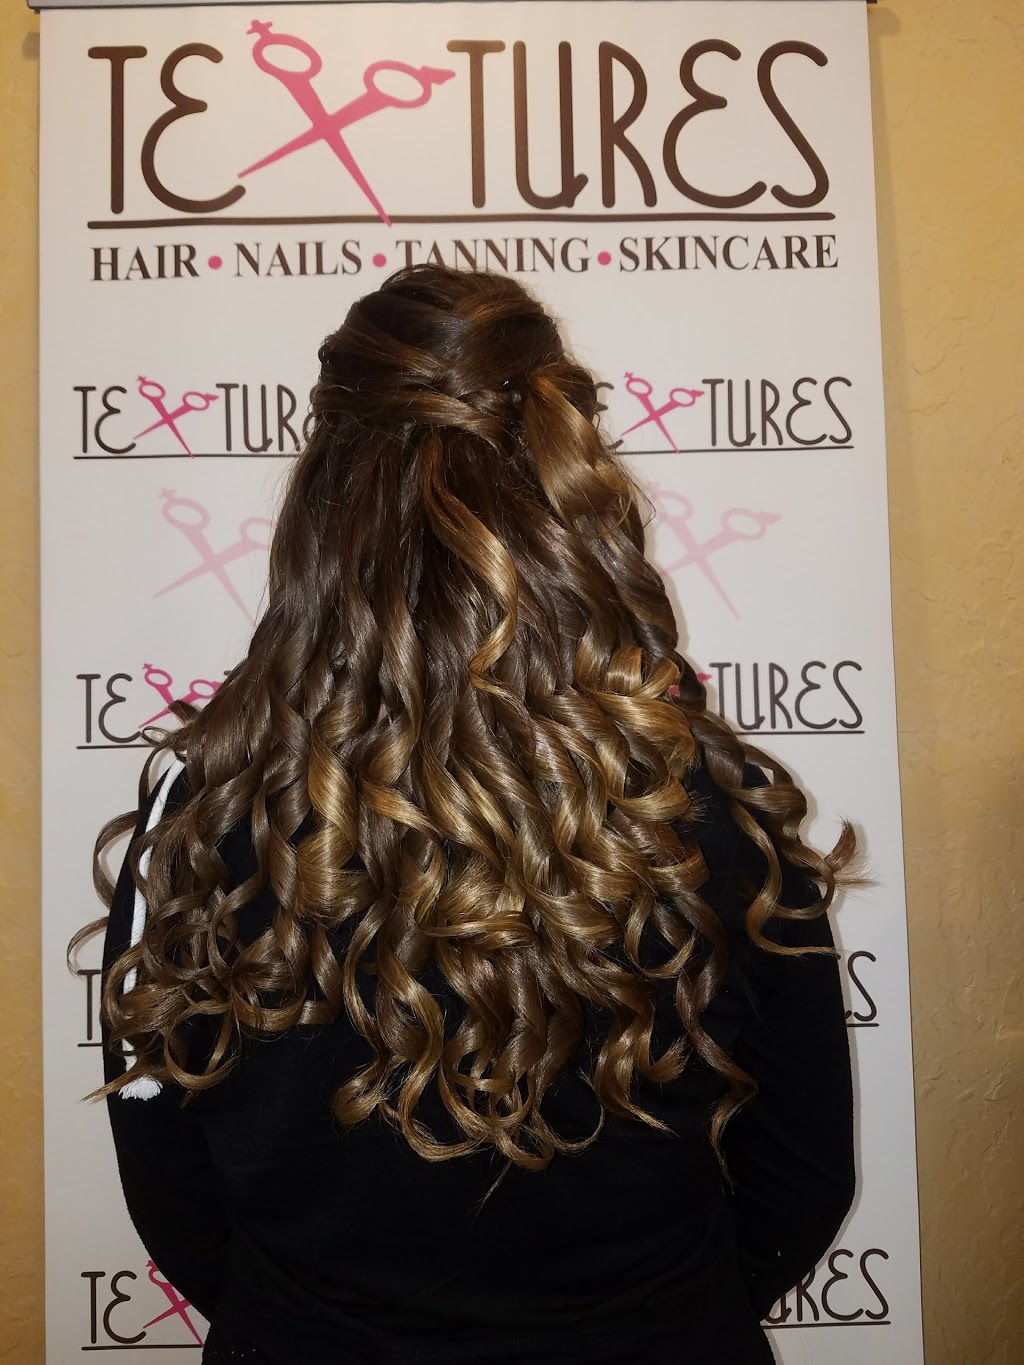 Textures Full Services Salon - hair care  | Photo 5 of 10 | Address: 911 Rte 50 suite a, Mays Landing, NJ 08330, USA | Phone: (609) 625-8678